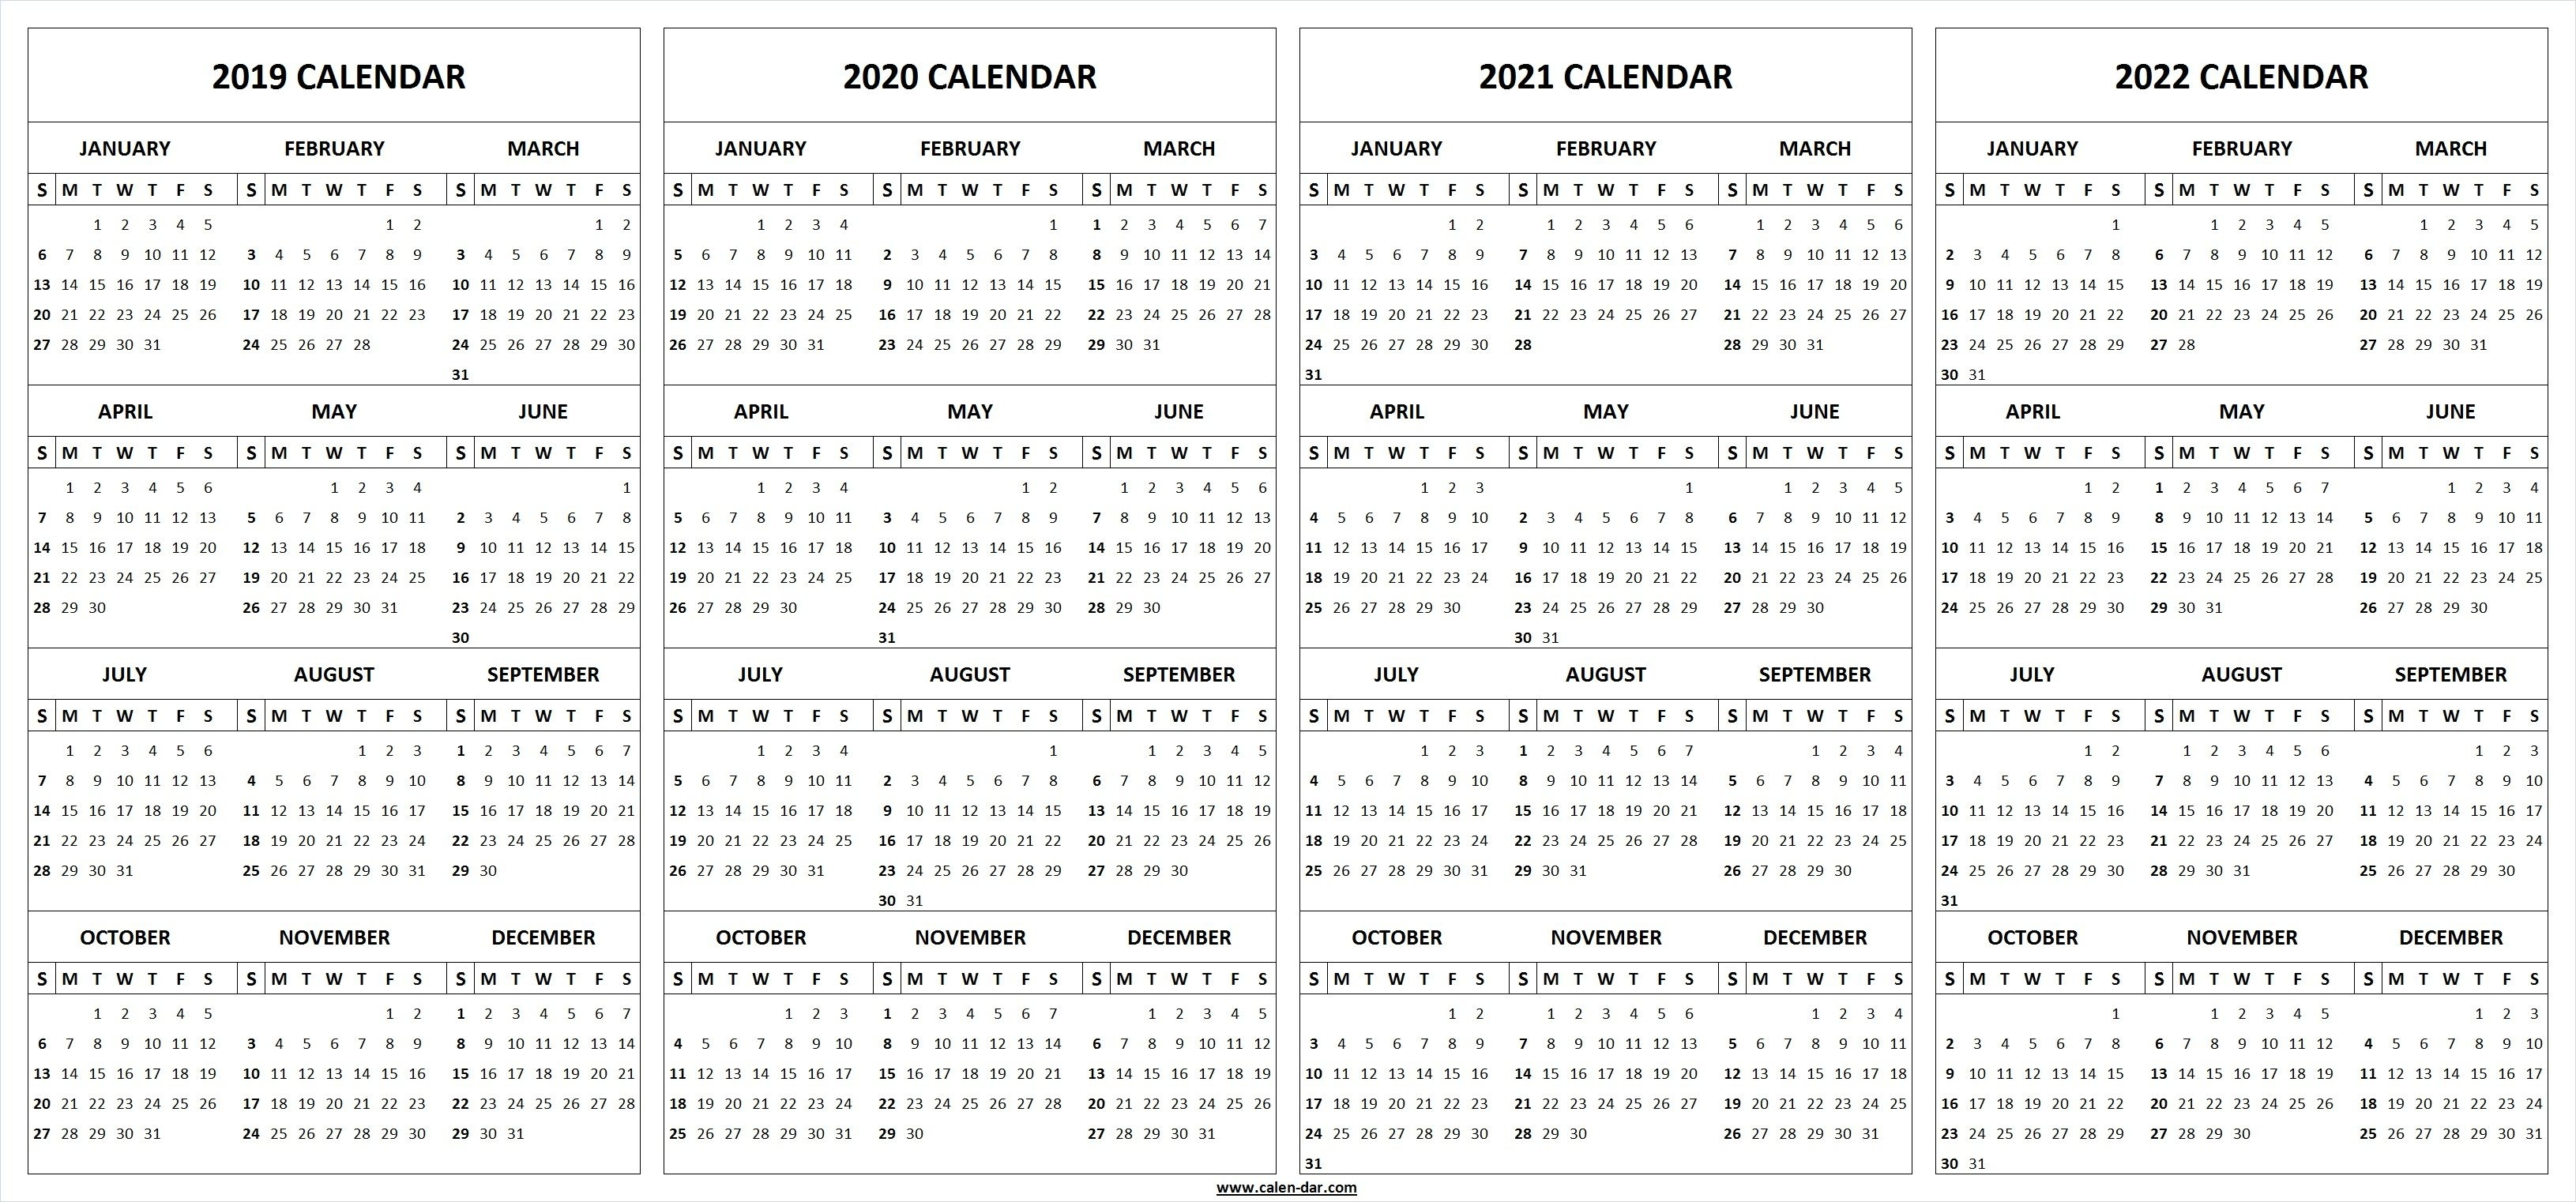 2019 2020 2021 2022 Calendar Blank Template | 2021 Calendar with regard to May Calendars For 2019 2020 2021 And 2022